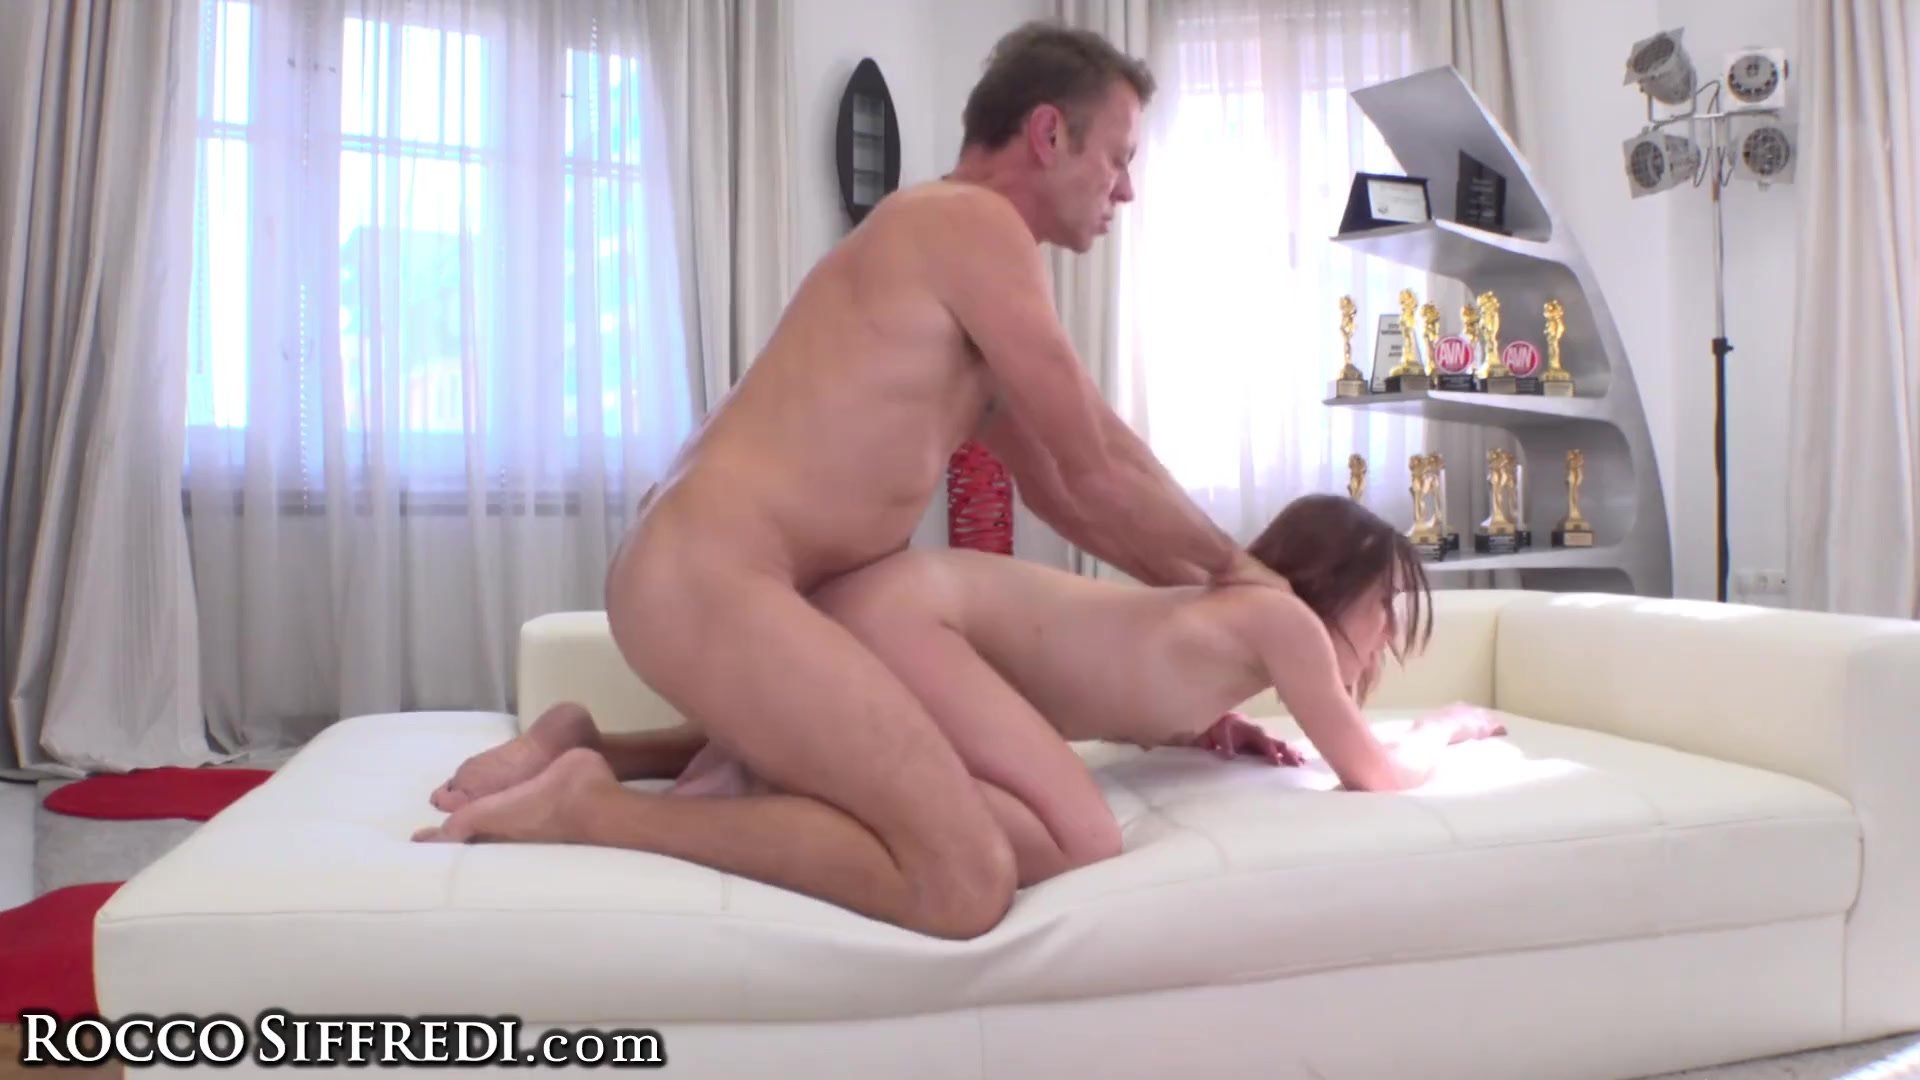 RoccoSiffredi Teen Takes 2 Cocks At a Time in Ass & Puss